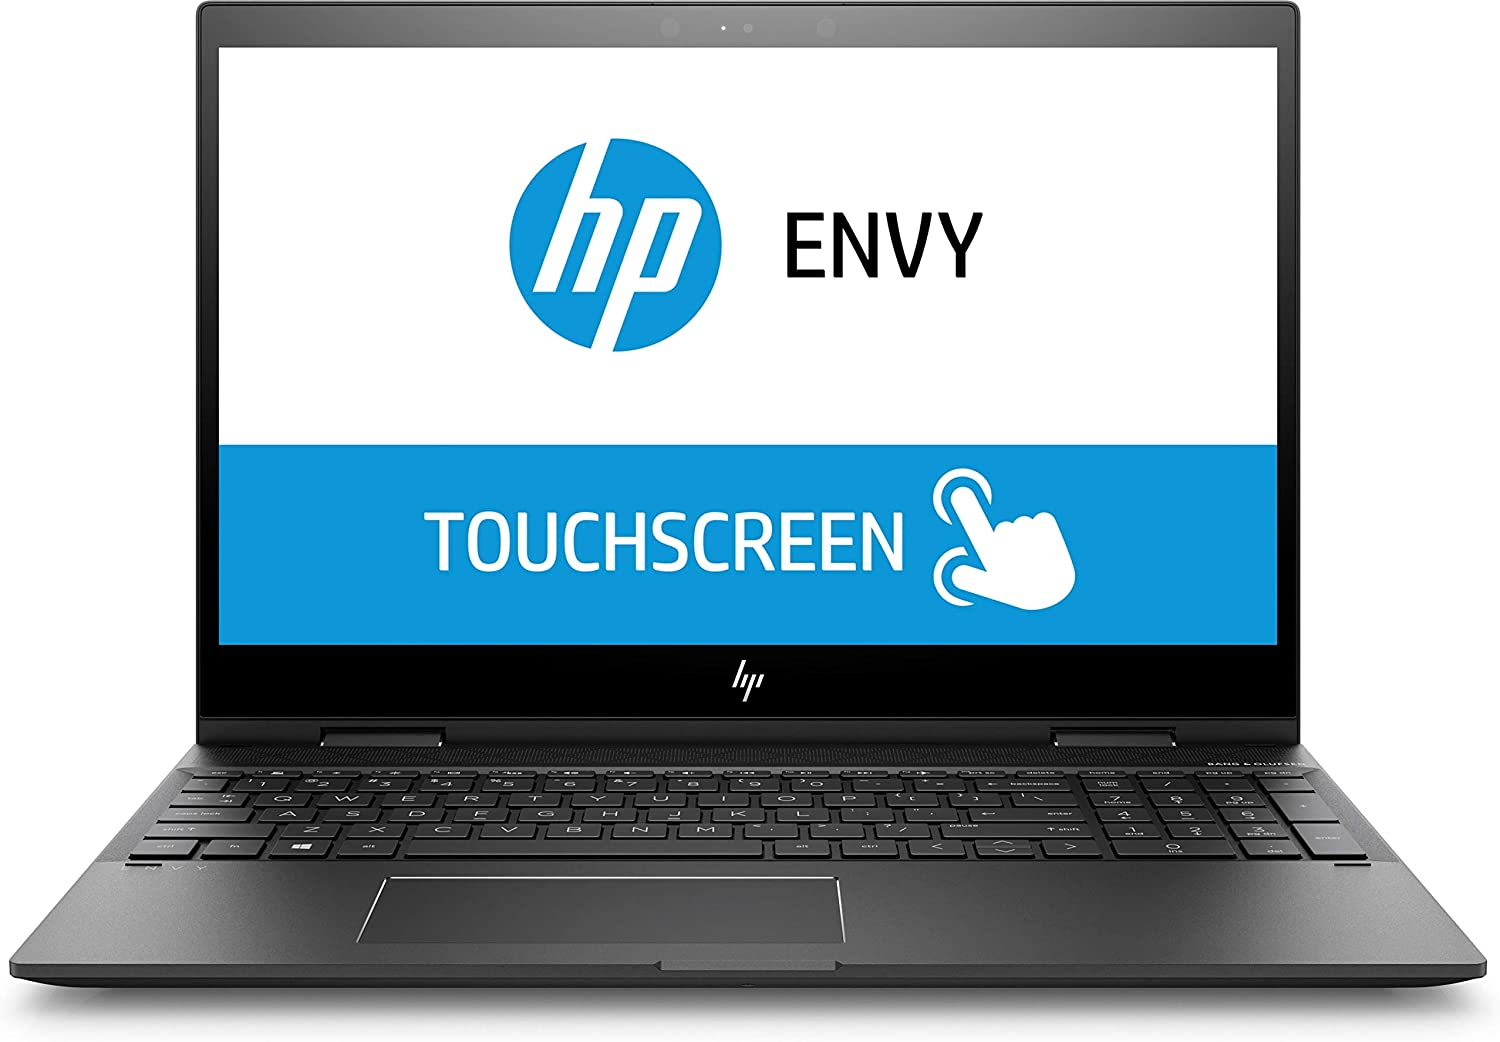 "HP ENVY x360 2-in-1 15.6"" FHD Touch - AMD Ryzen 5-8GB - Radeon RX Vega 8-128GB SSD - Dark Ash"